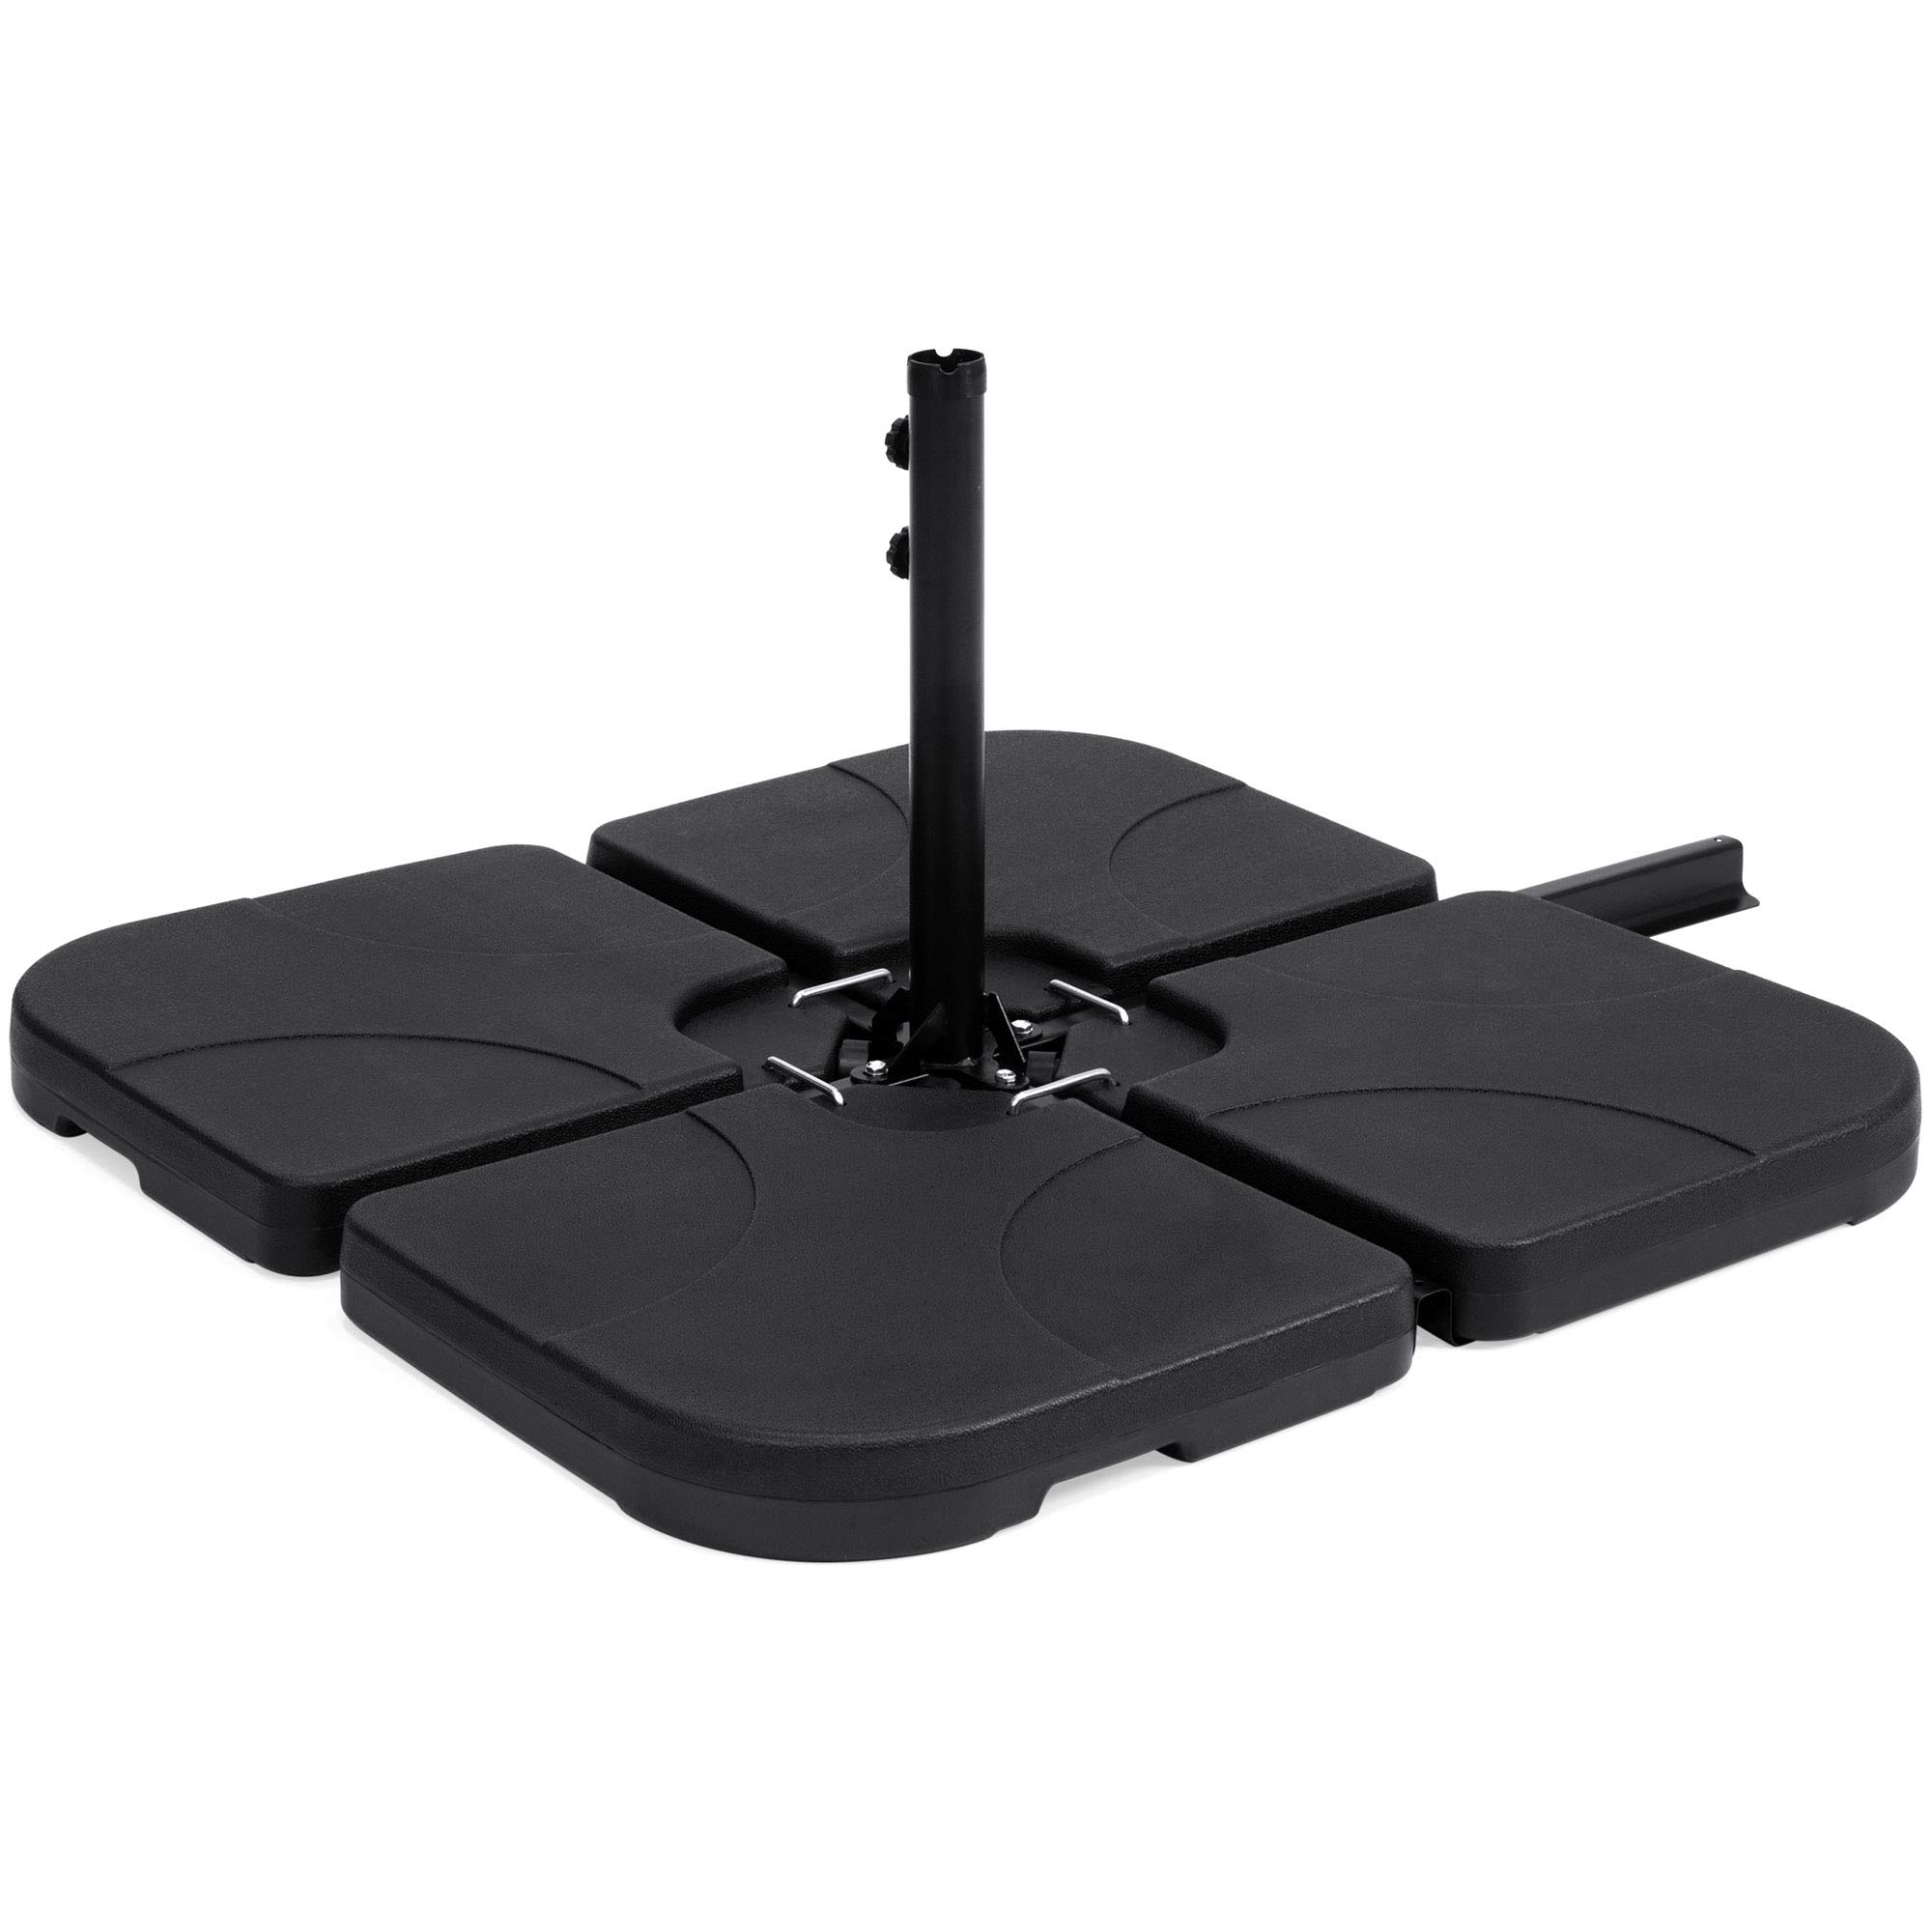 Best Choice Products 4-Piece Cantilever Offset Patio Umbrella Stand Square Base Plate Set w/Easy-Fill Spouts - Black by Best Choice Products